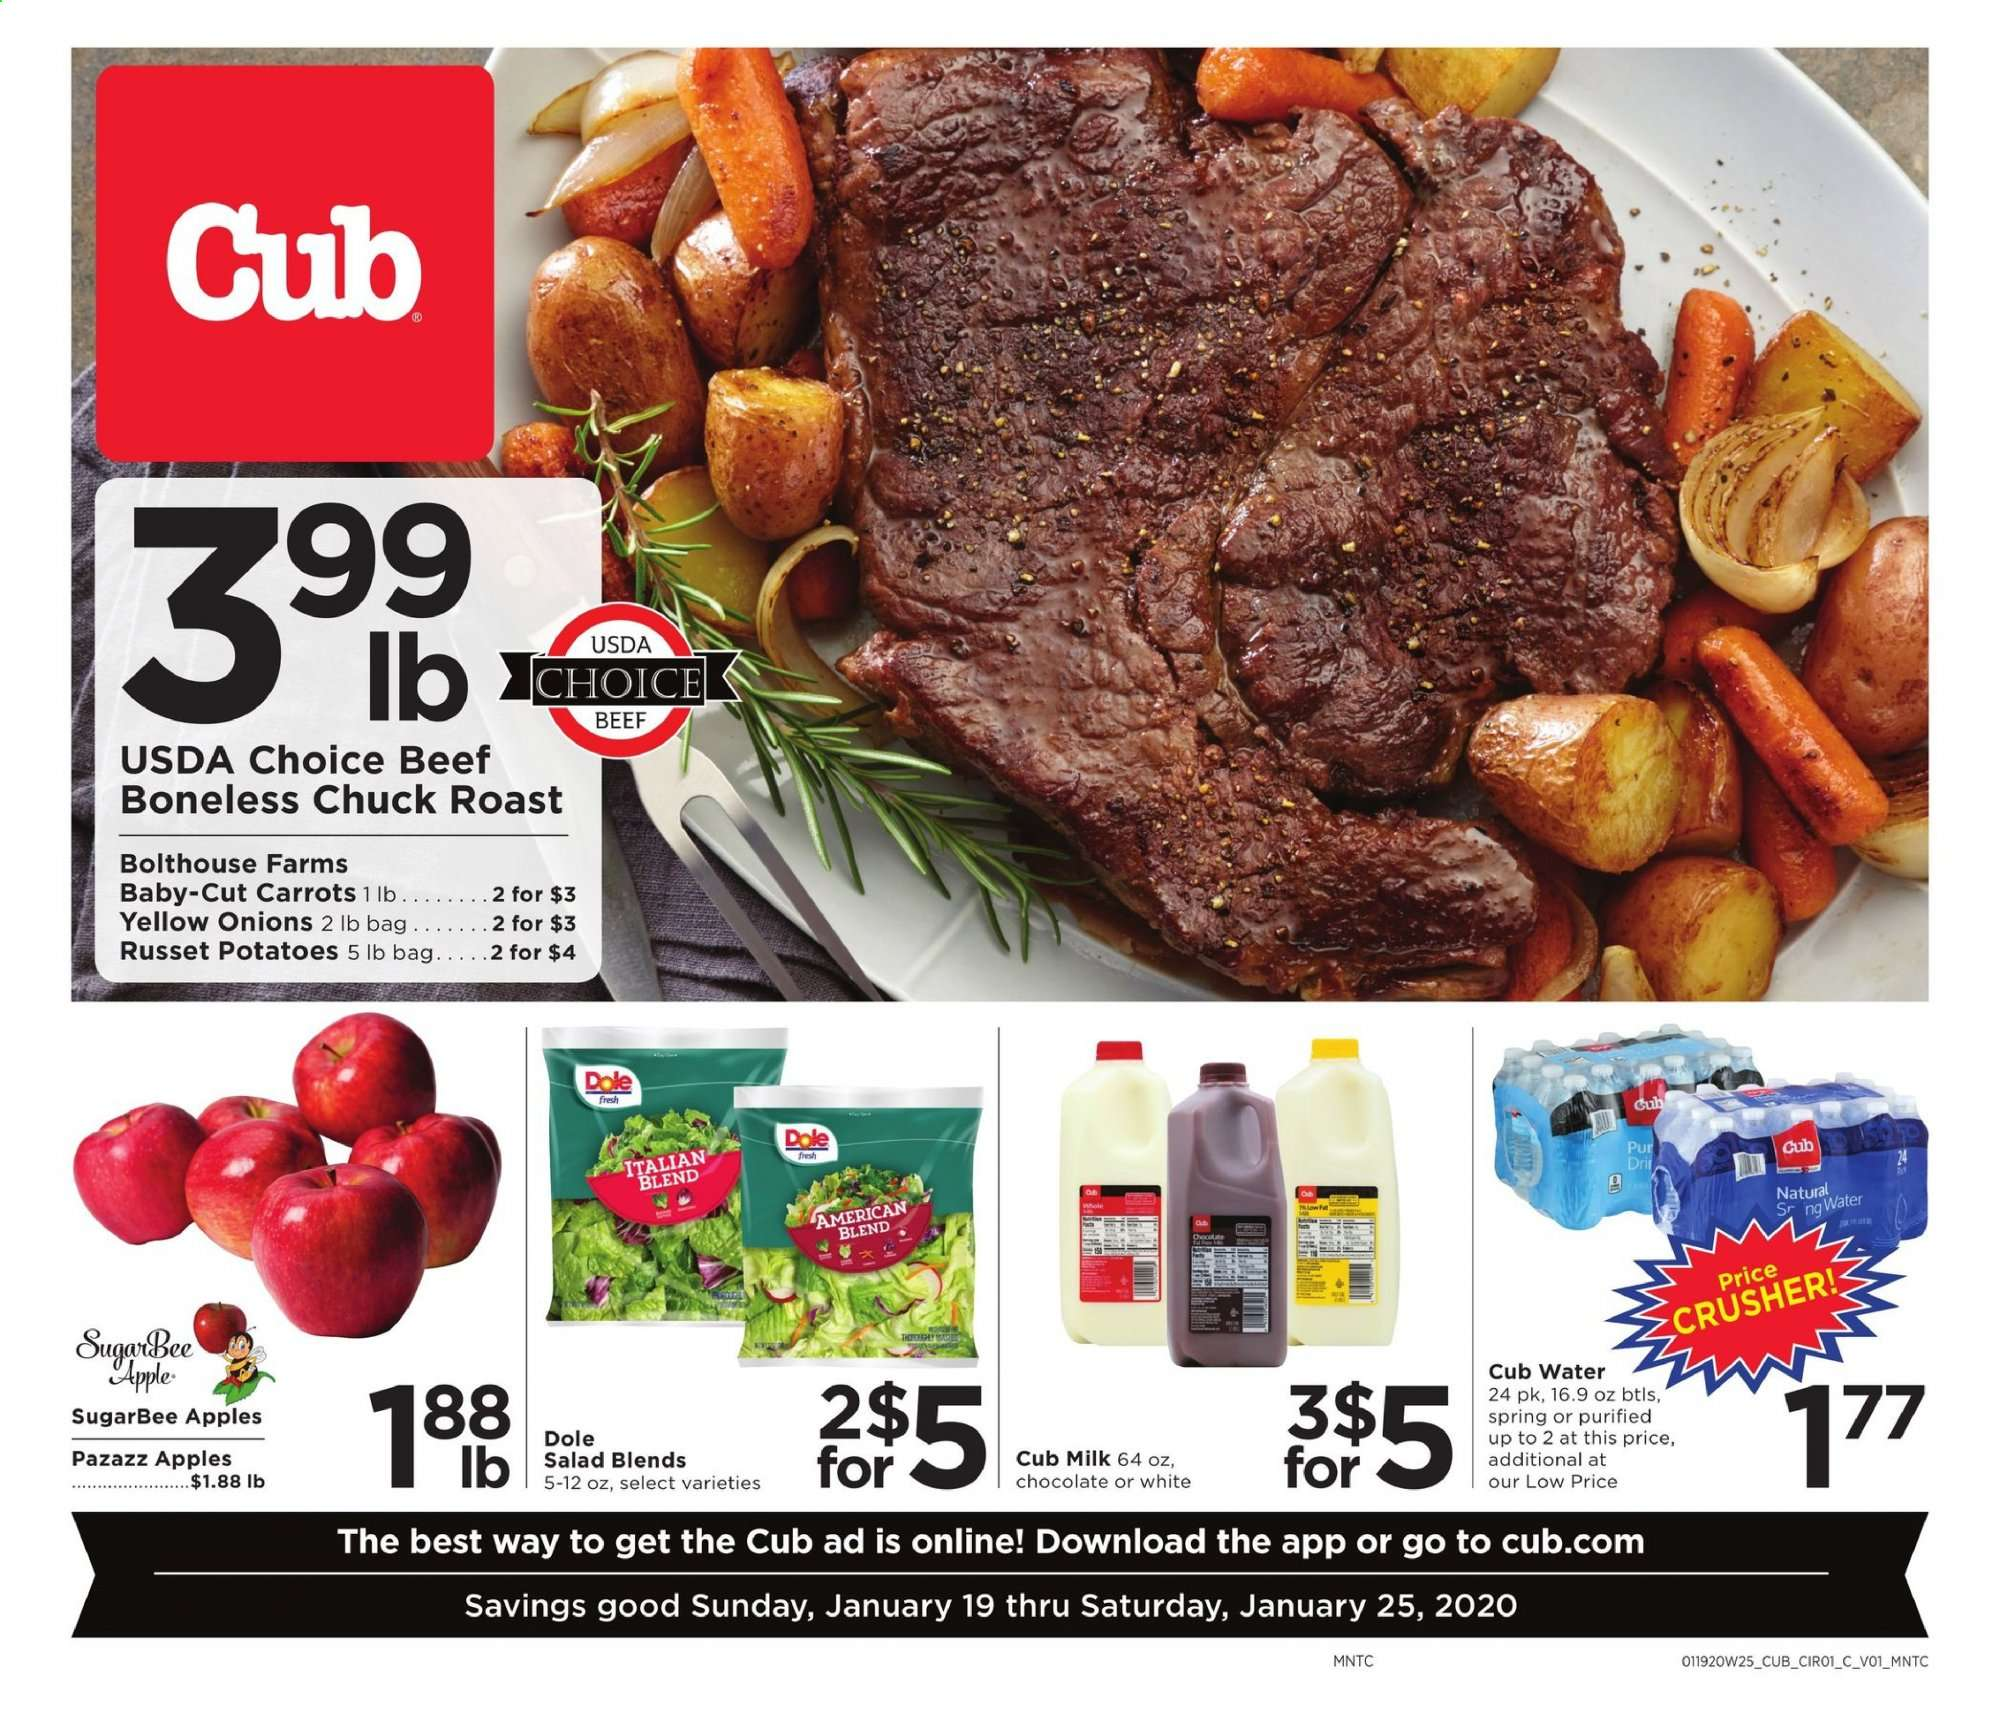 Cub Foods Flyer - 01.19.2020 - 01.25.2020 - Sales products - carrots, russet potatoes, yellow onions, potatoes, onion, Dole, apples, salad, milk, chocolate, water, beef meat. Page 1.